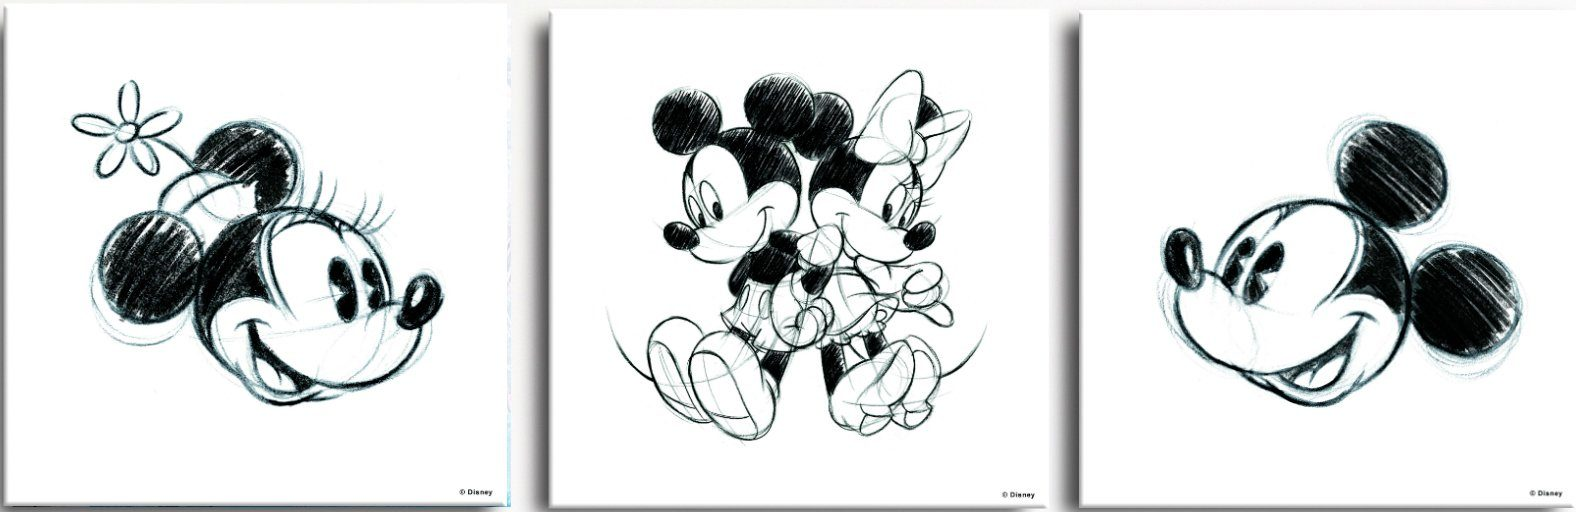 GRAHAM & BROWN Leinwand »Leinwandbild Mickey & Minnie Sketches, 3-er Set«